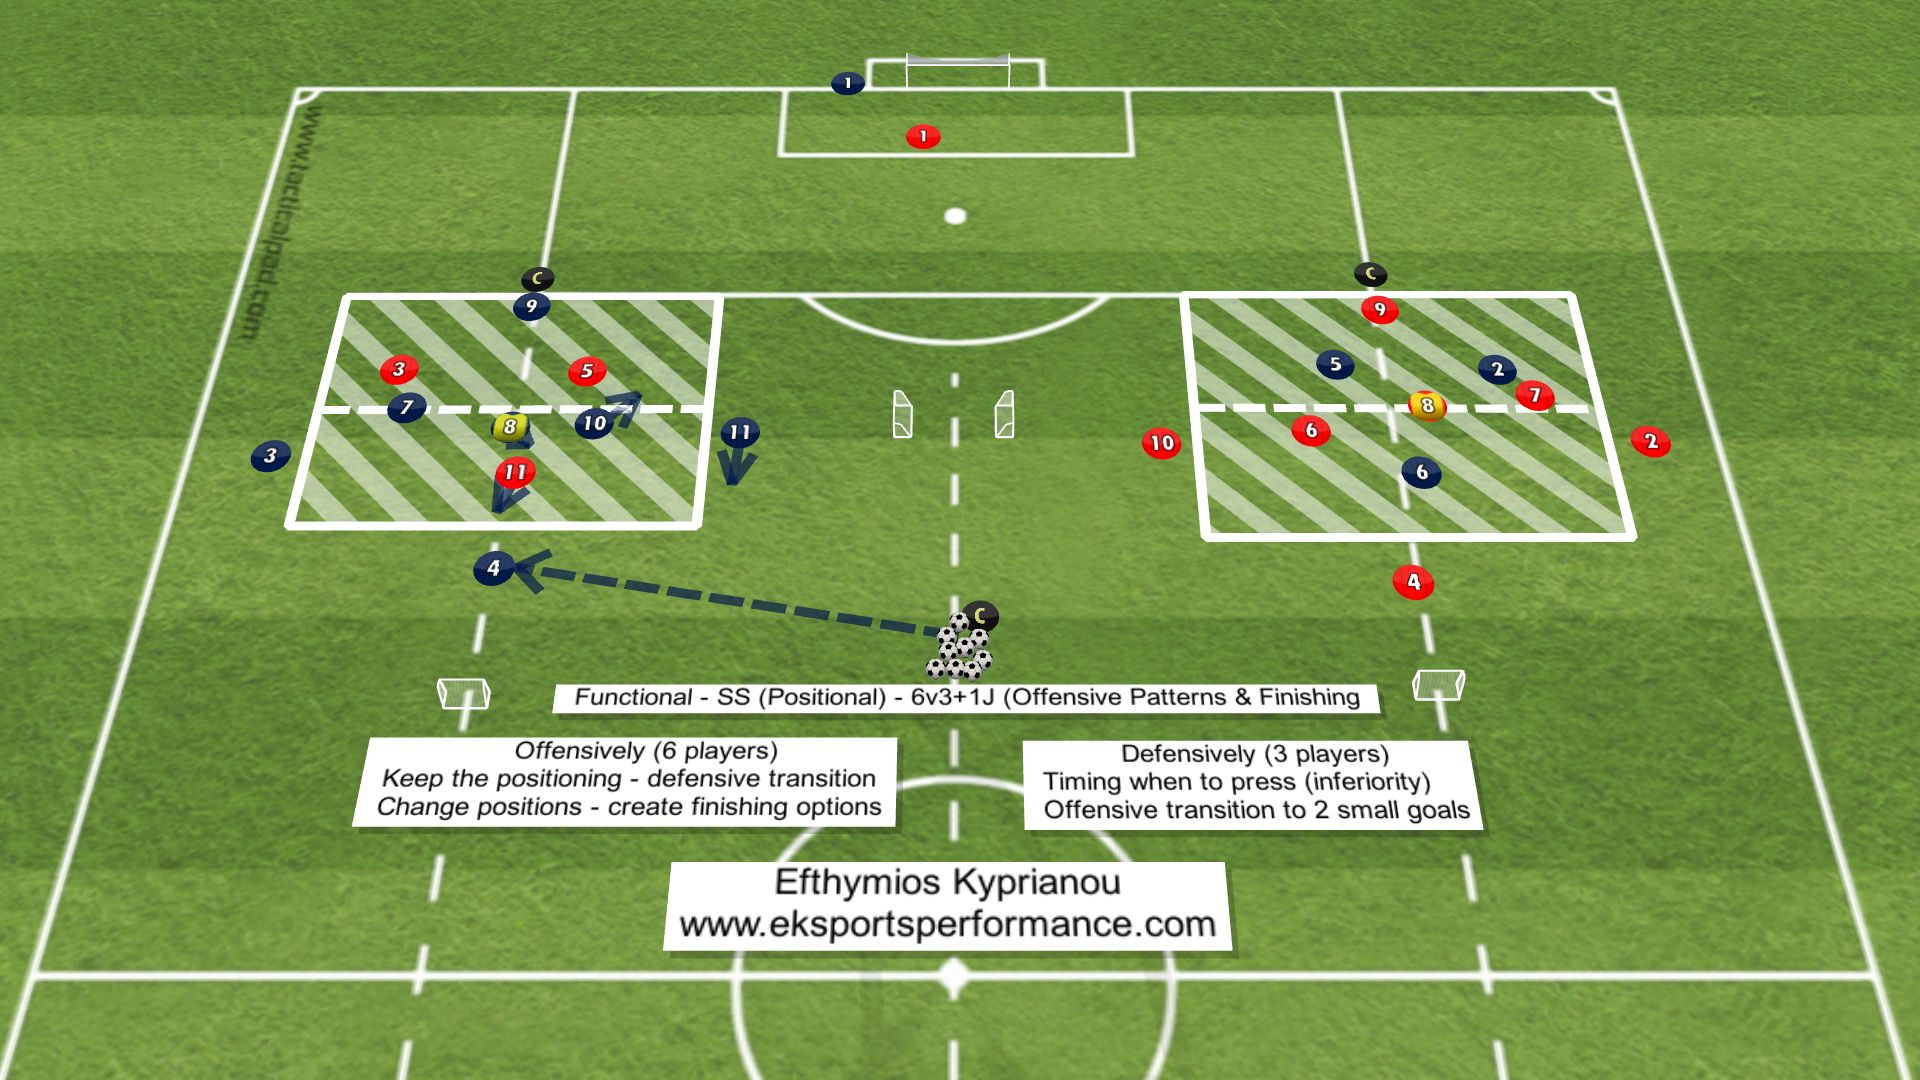 Functional-SS-Positional-5v41J-Offensive-patterns-Finishing-ANIMATION-2-2